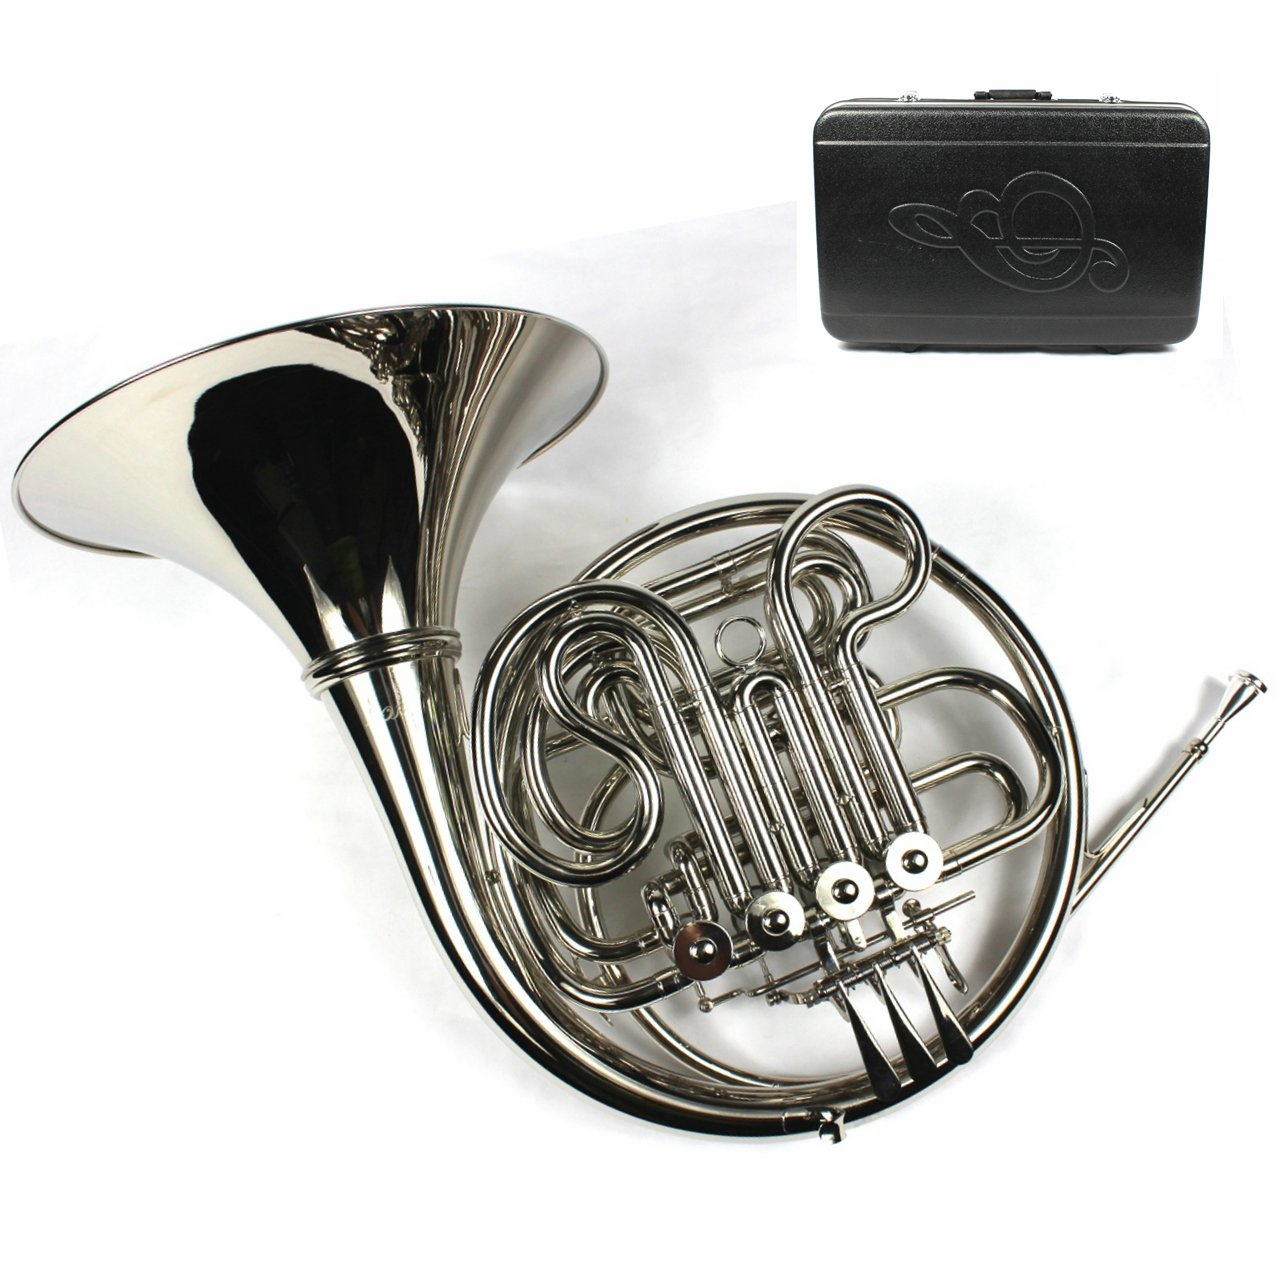 monel rotors bb f 4 keys double french horn w case mouthpiece nickel plated finish. Black Bedroom Furniture Sets. Home Design Ideas